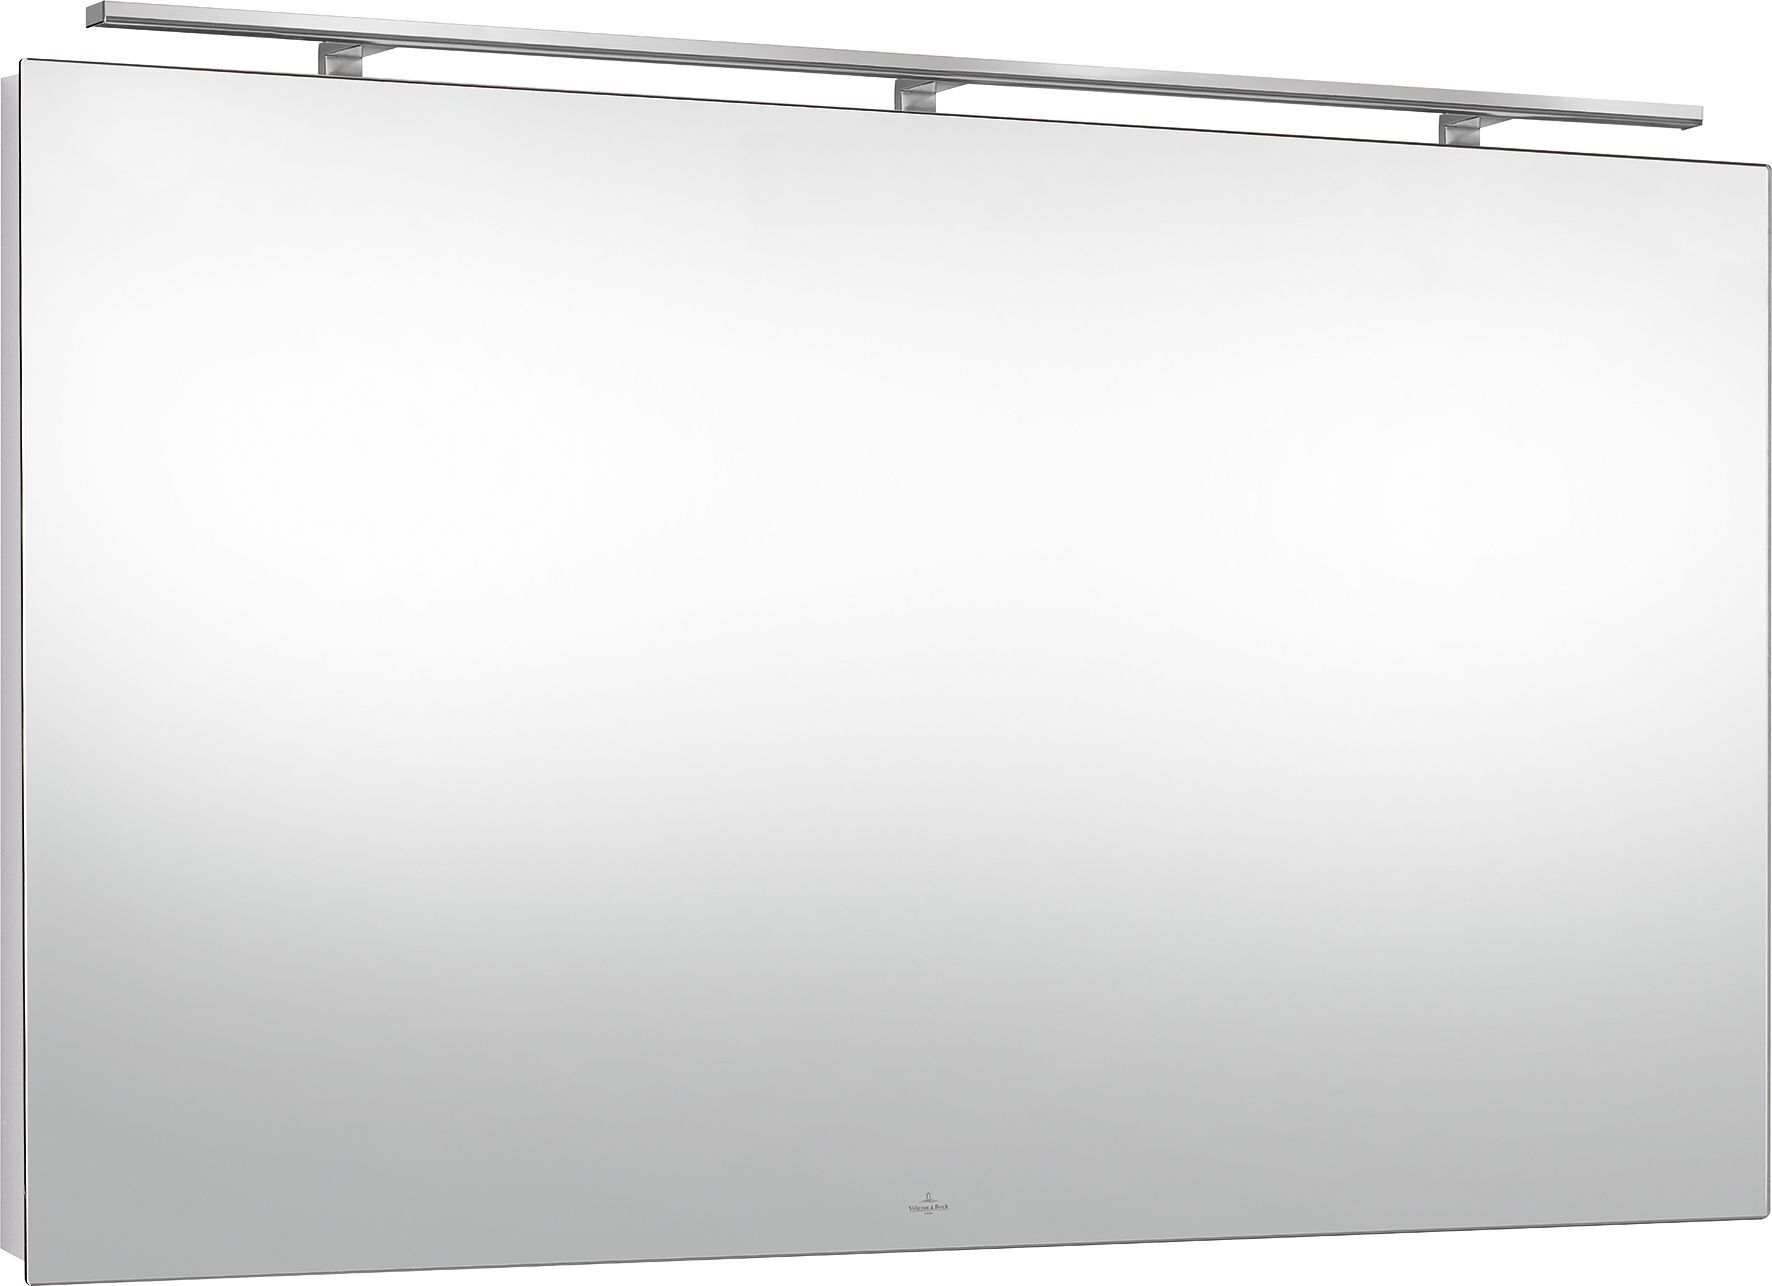 Villeroy & Boch More to See Spiegel mit LED-Beleuchtung 1400x750x50/130 A4041400